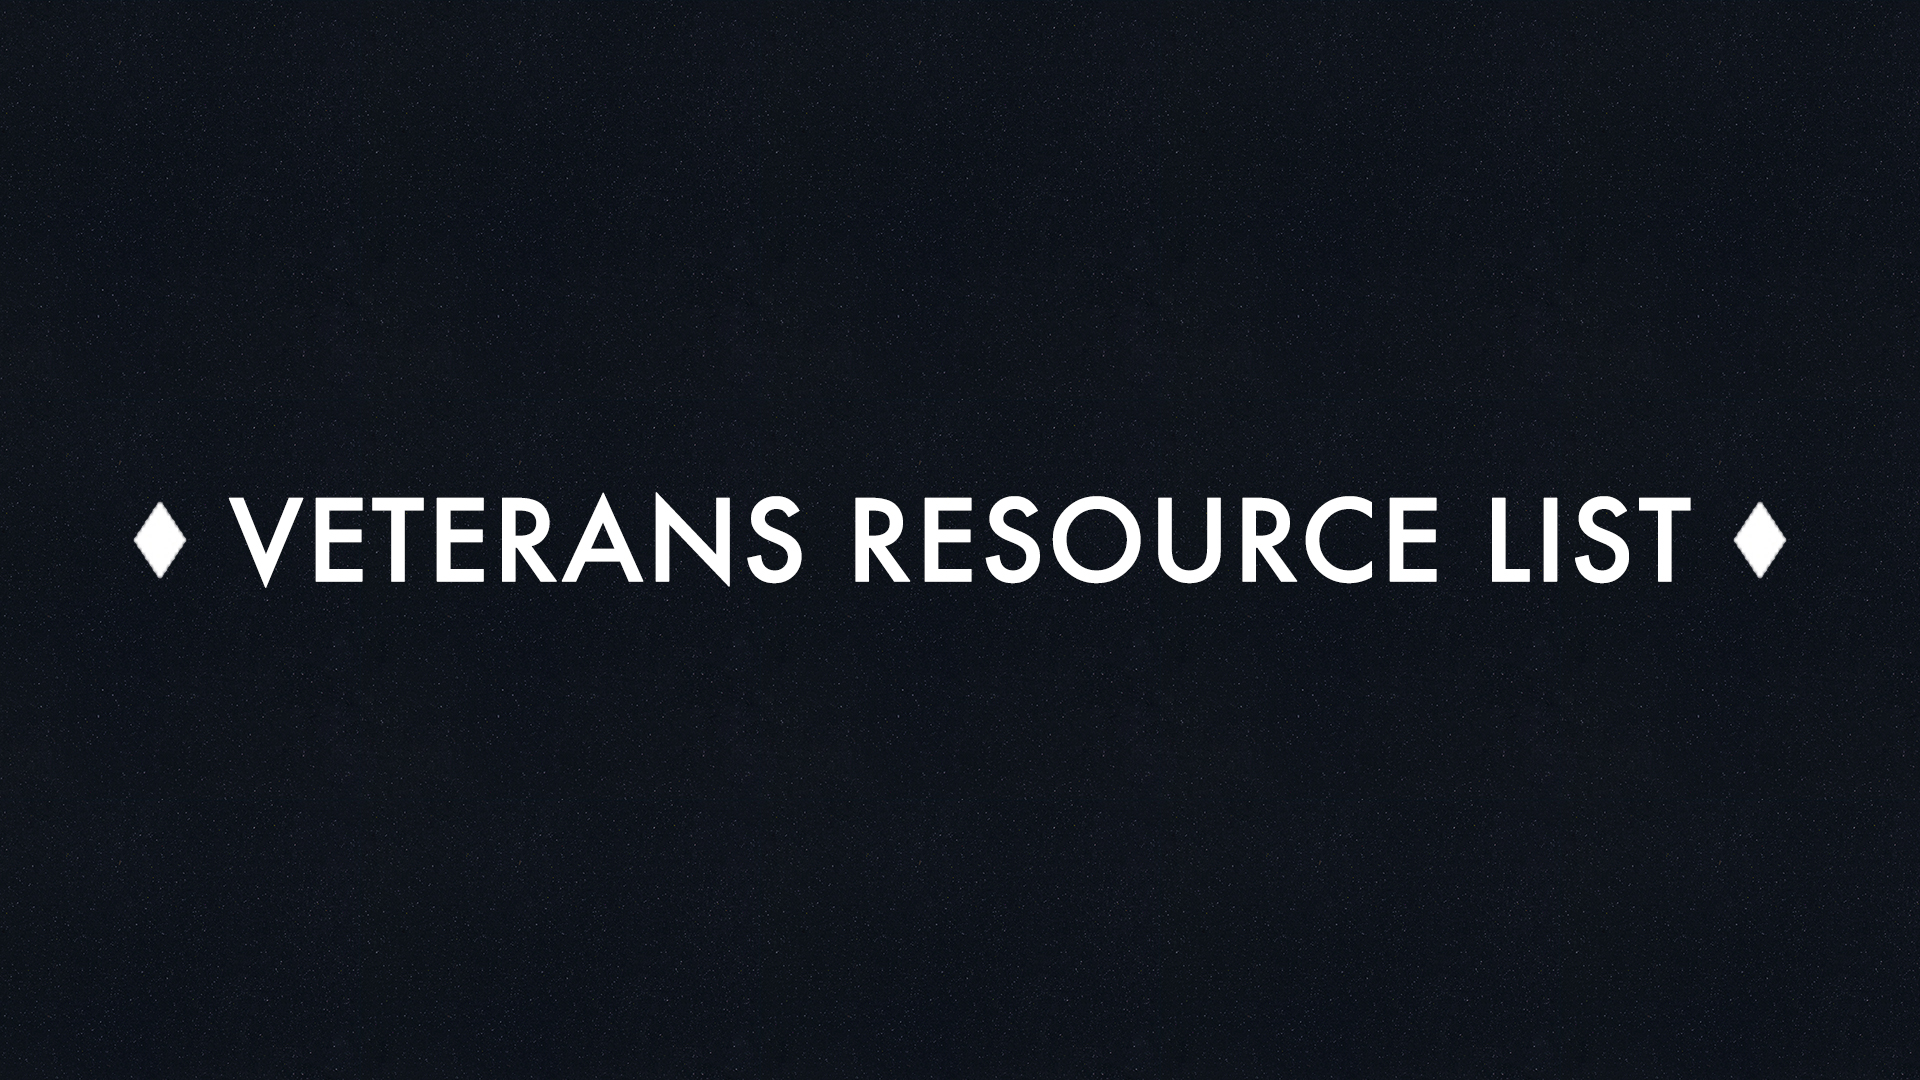 Veterans Resources